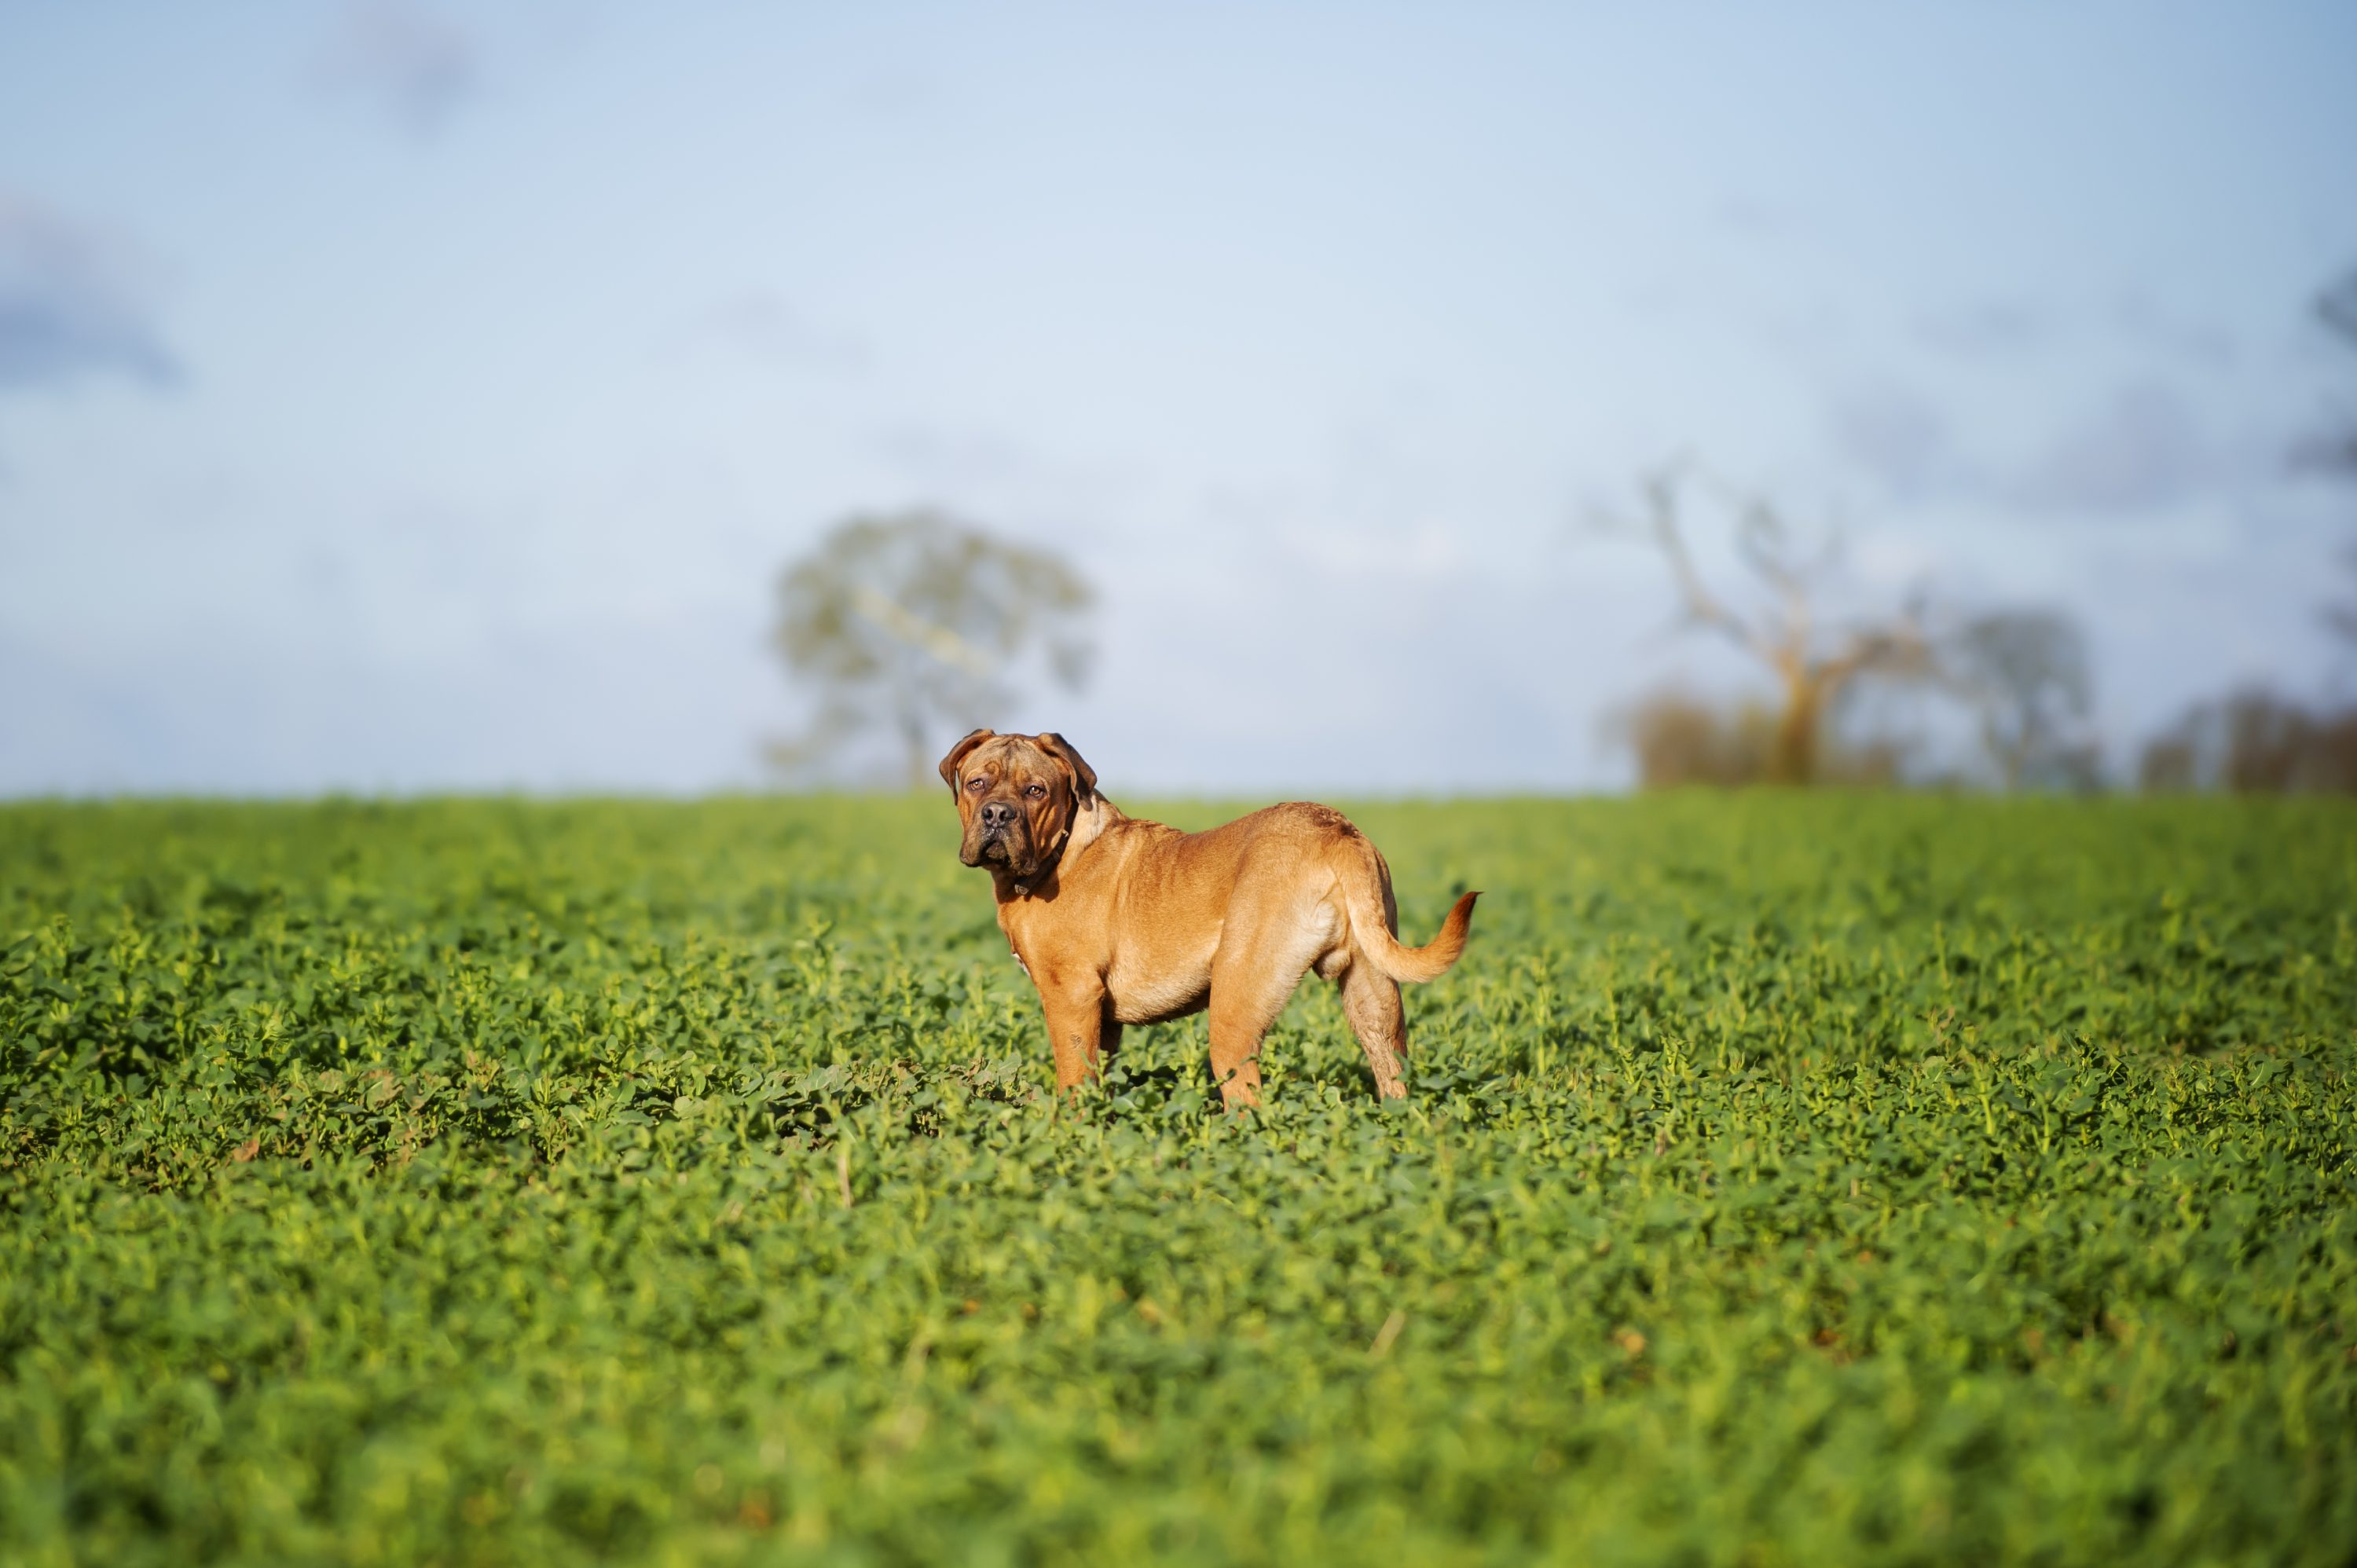 Dogue_De_Bordeaux_Puppy_7_Months